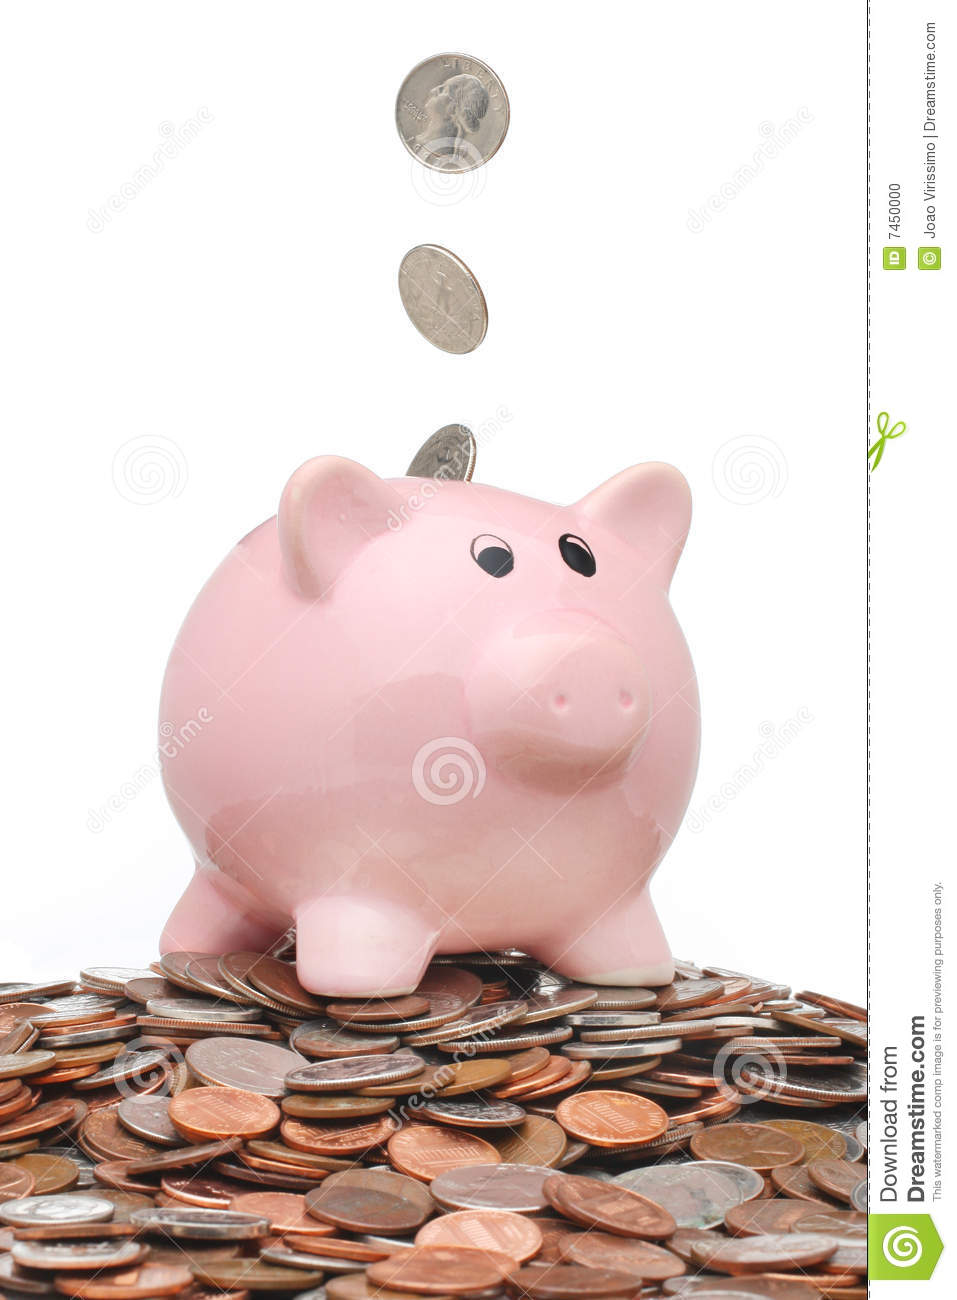 worksheet Adding Money adding money to a pig bank stock photo image 7450000 royalty free download money